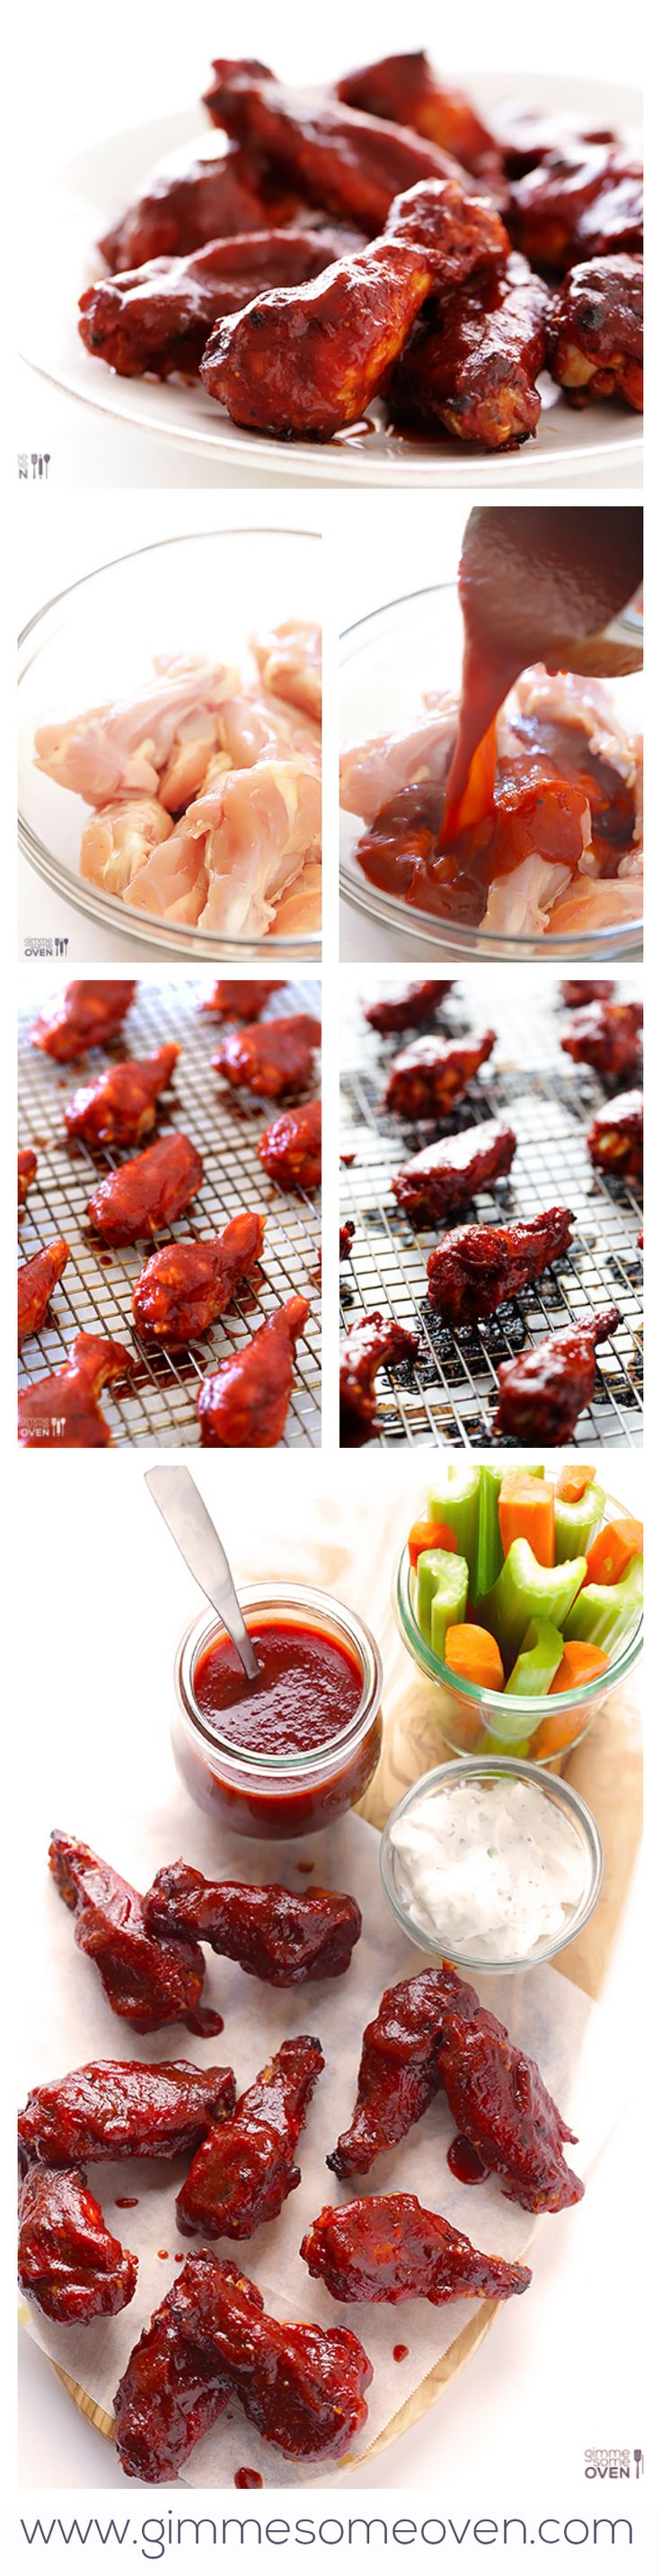 Skinny BBQ Baked Chicken Wings -- made with a heavenly (and healthier!) Kansas City BBQ sauce! | gimmesomeoven.com #gameday #appetizer